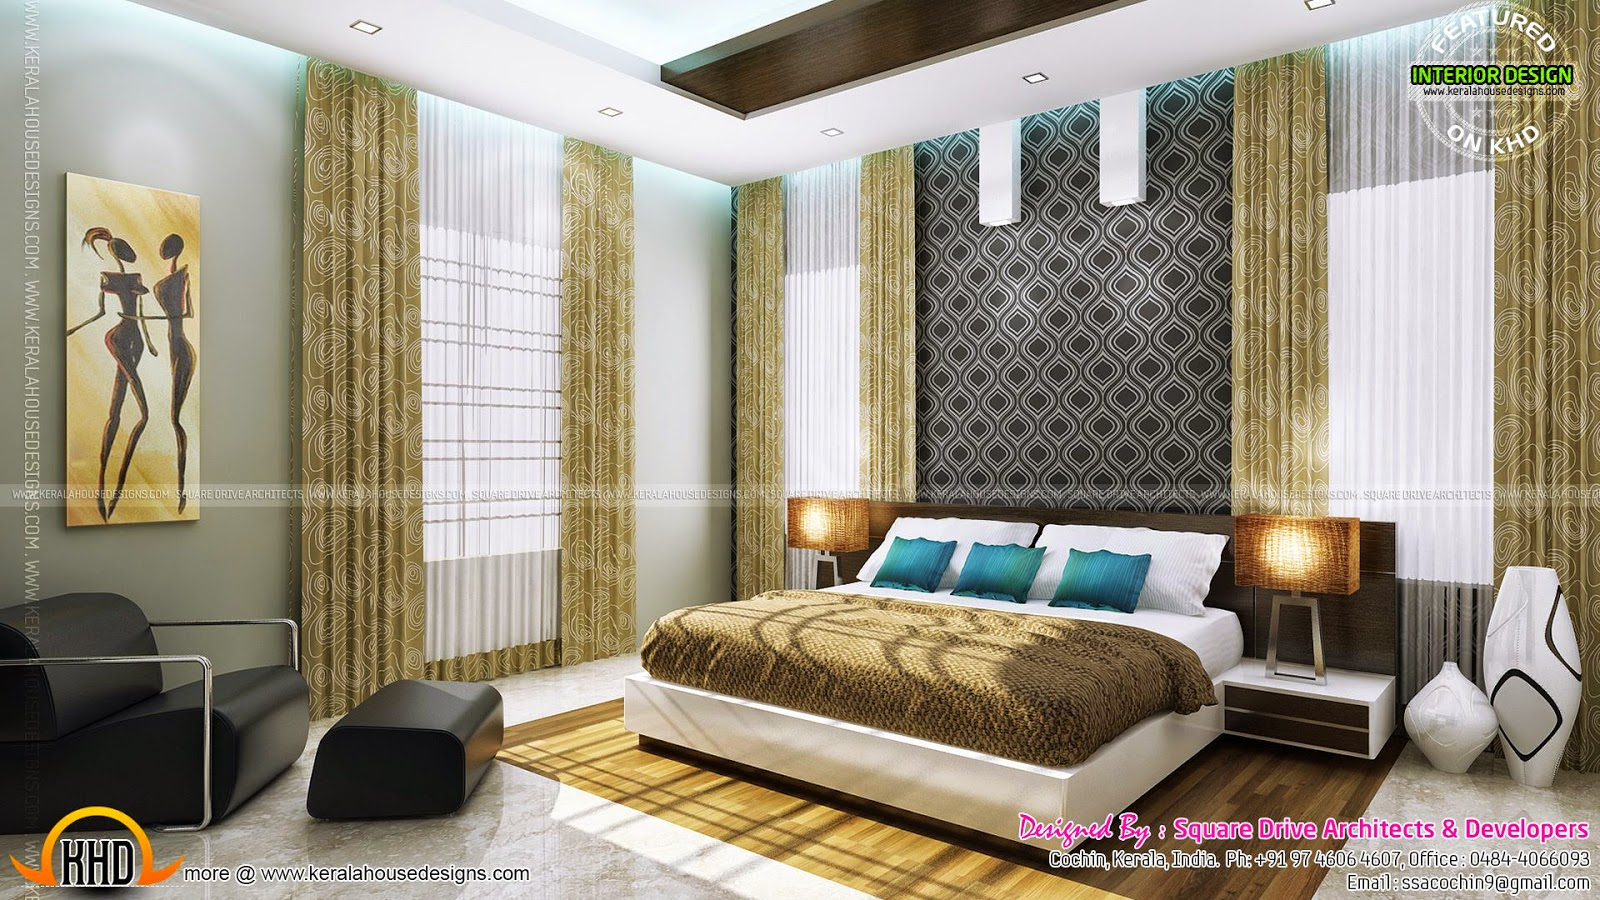 Bedroom and living interior designs kerala home design for Kerala house living room interior design